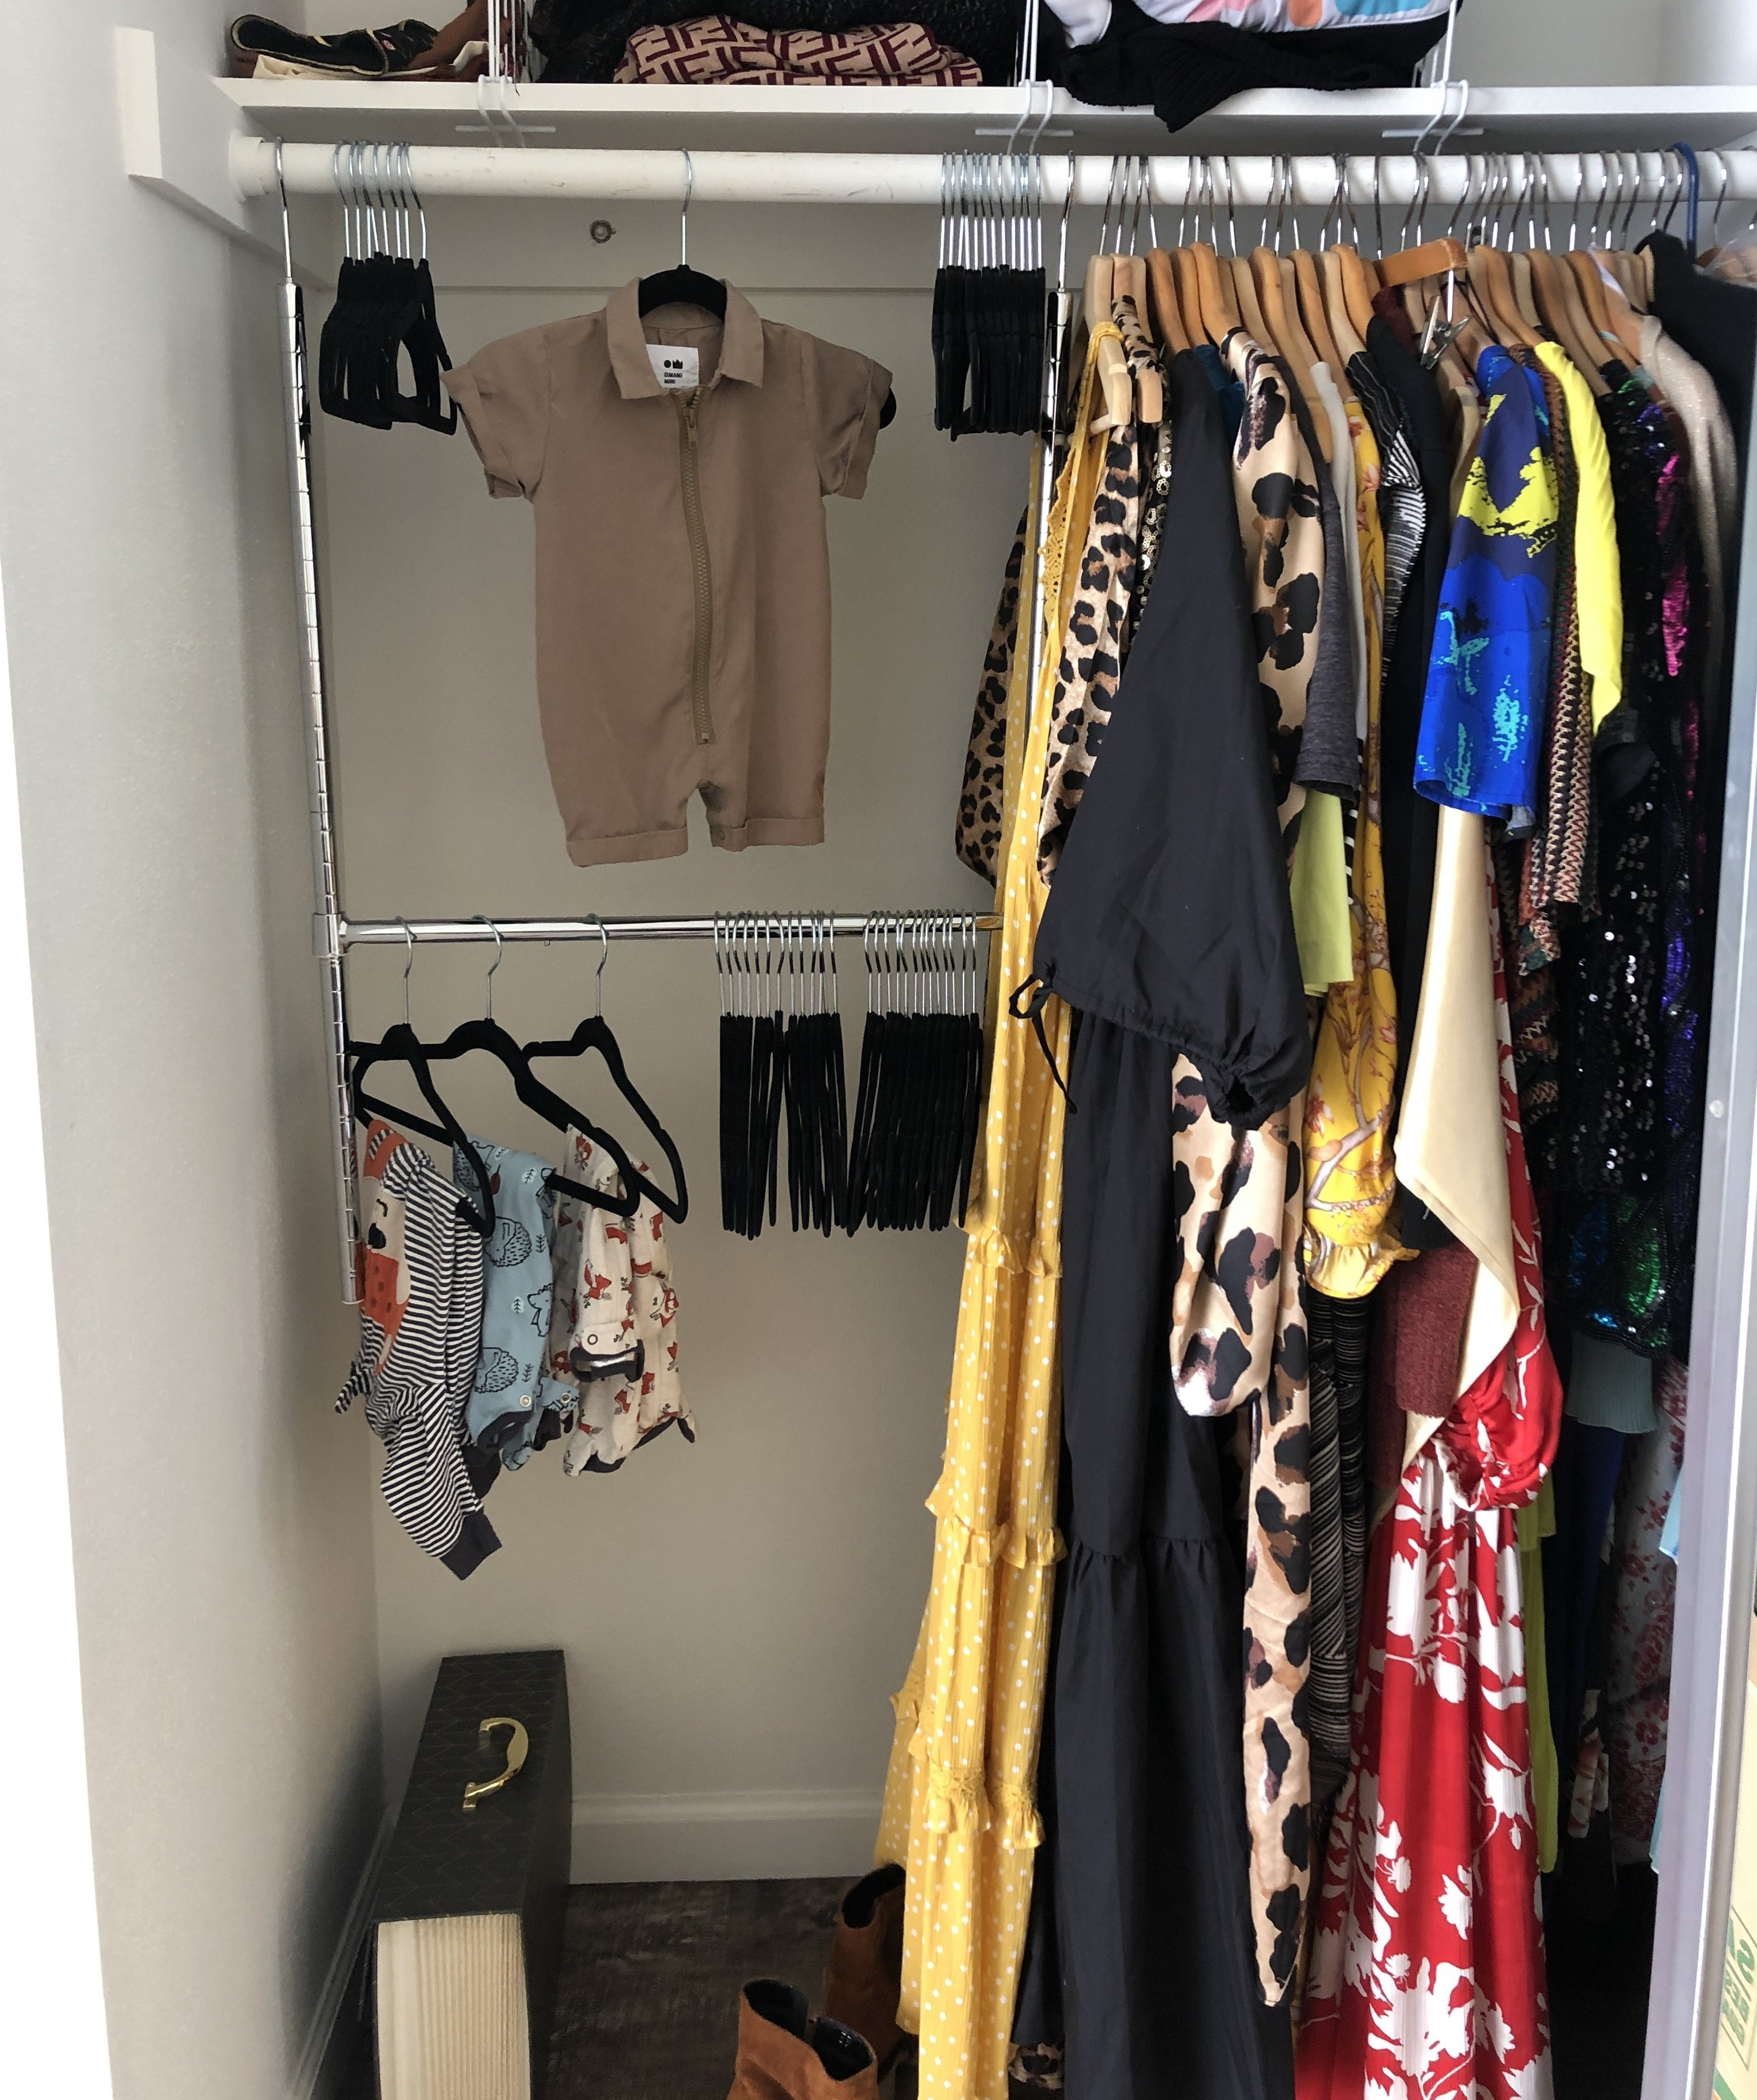 A closet is shown with the double hanging rod